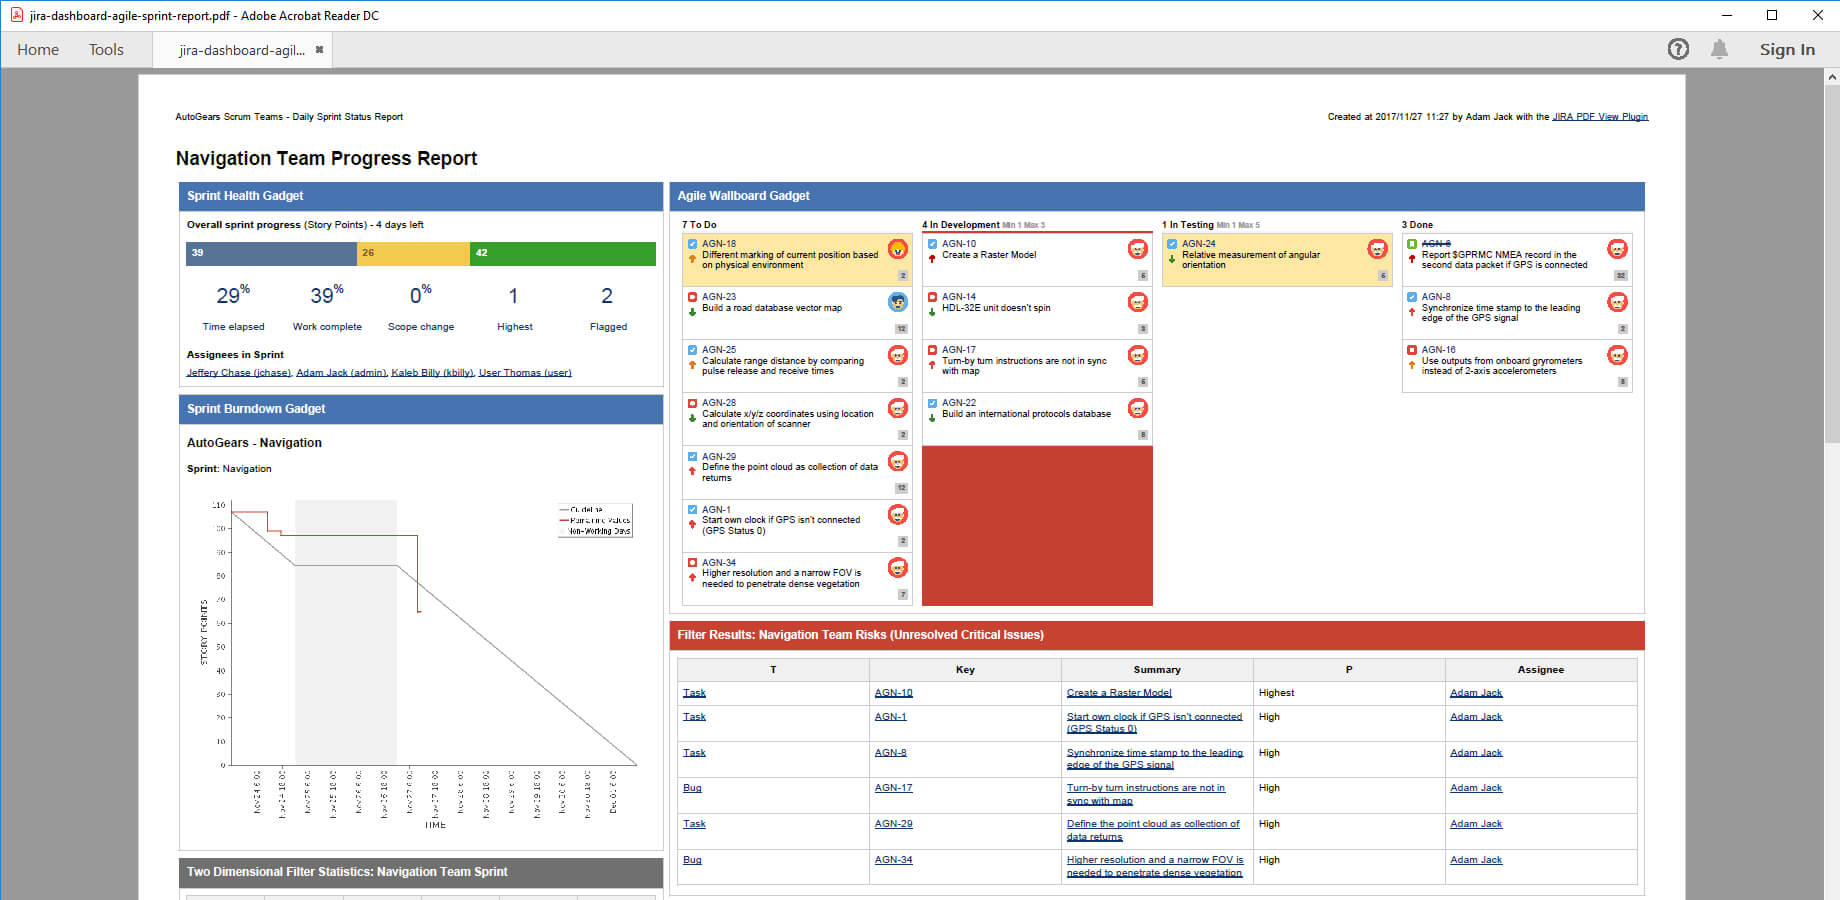 Template Gallery - Better Pdf Exporter For Jira | Midori with Testing Weekly Status Report Template